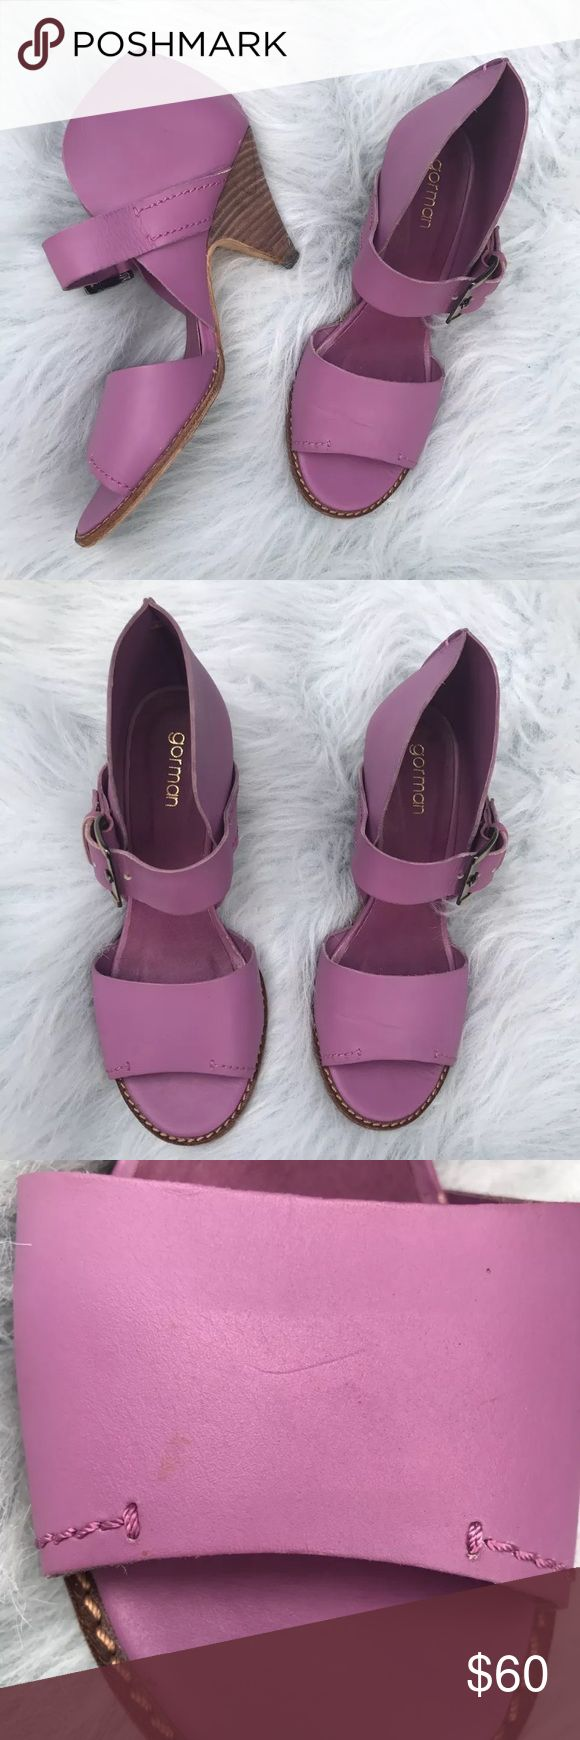 Gorman purple heels sandals ADORABLE GORMAN RAQUEL HEEL, SIZE 39. SMALL HEEL 2.5 INCHES. GOOD USED CONDITION. MINIMAL WEAR ON BOTTOM AND BOTTOM HEEL AND INSIDE LINING IS LIFTING VERY SLIGHTLY ON LEFT SHOE. SEE PHOTOS.  PURPLE COLOR, REMINDS ME OF BLACK RASPBERRY COLOR. gorman Shoes Heels